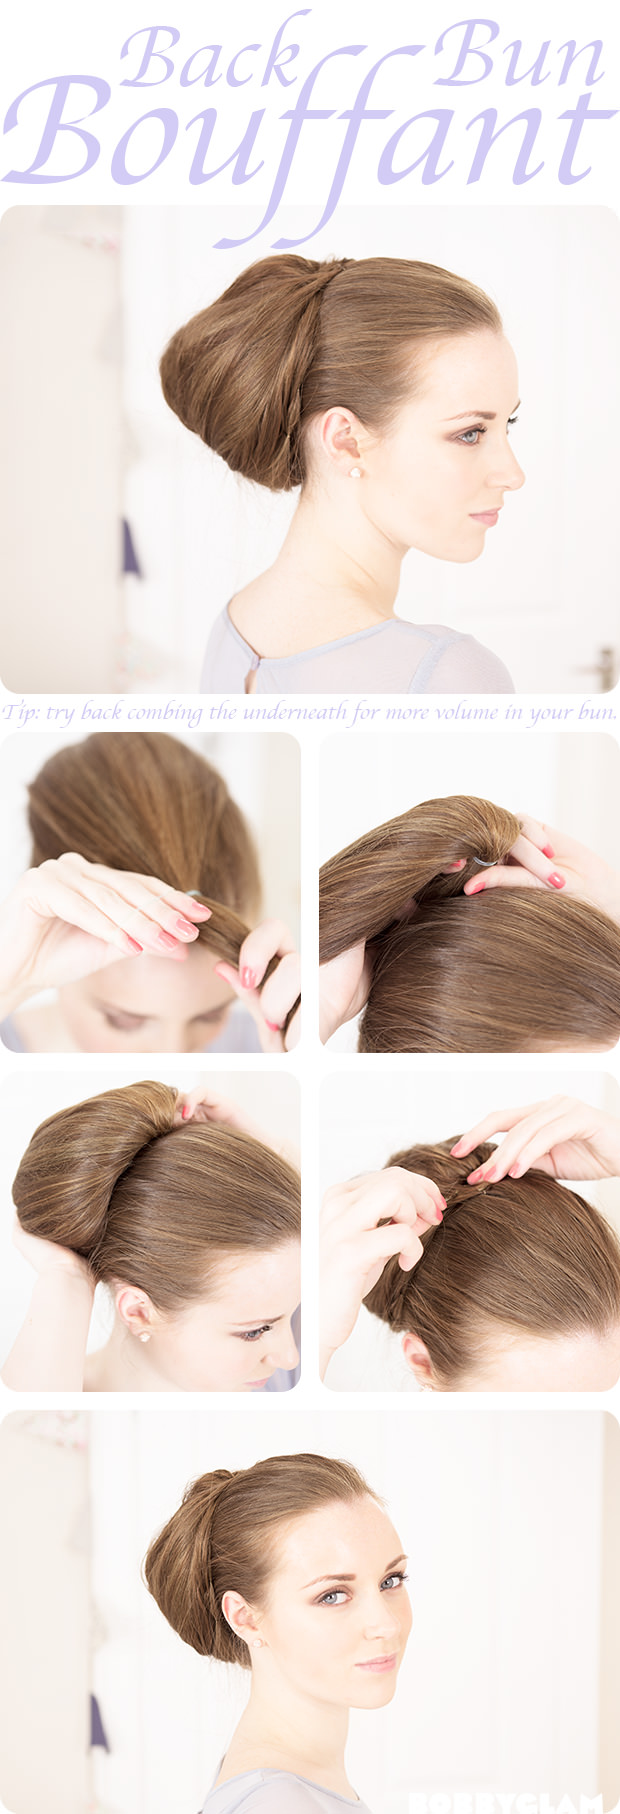 back bun bouffant tutorial